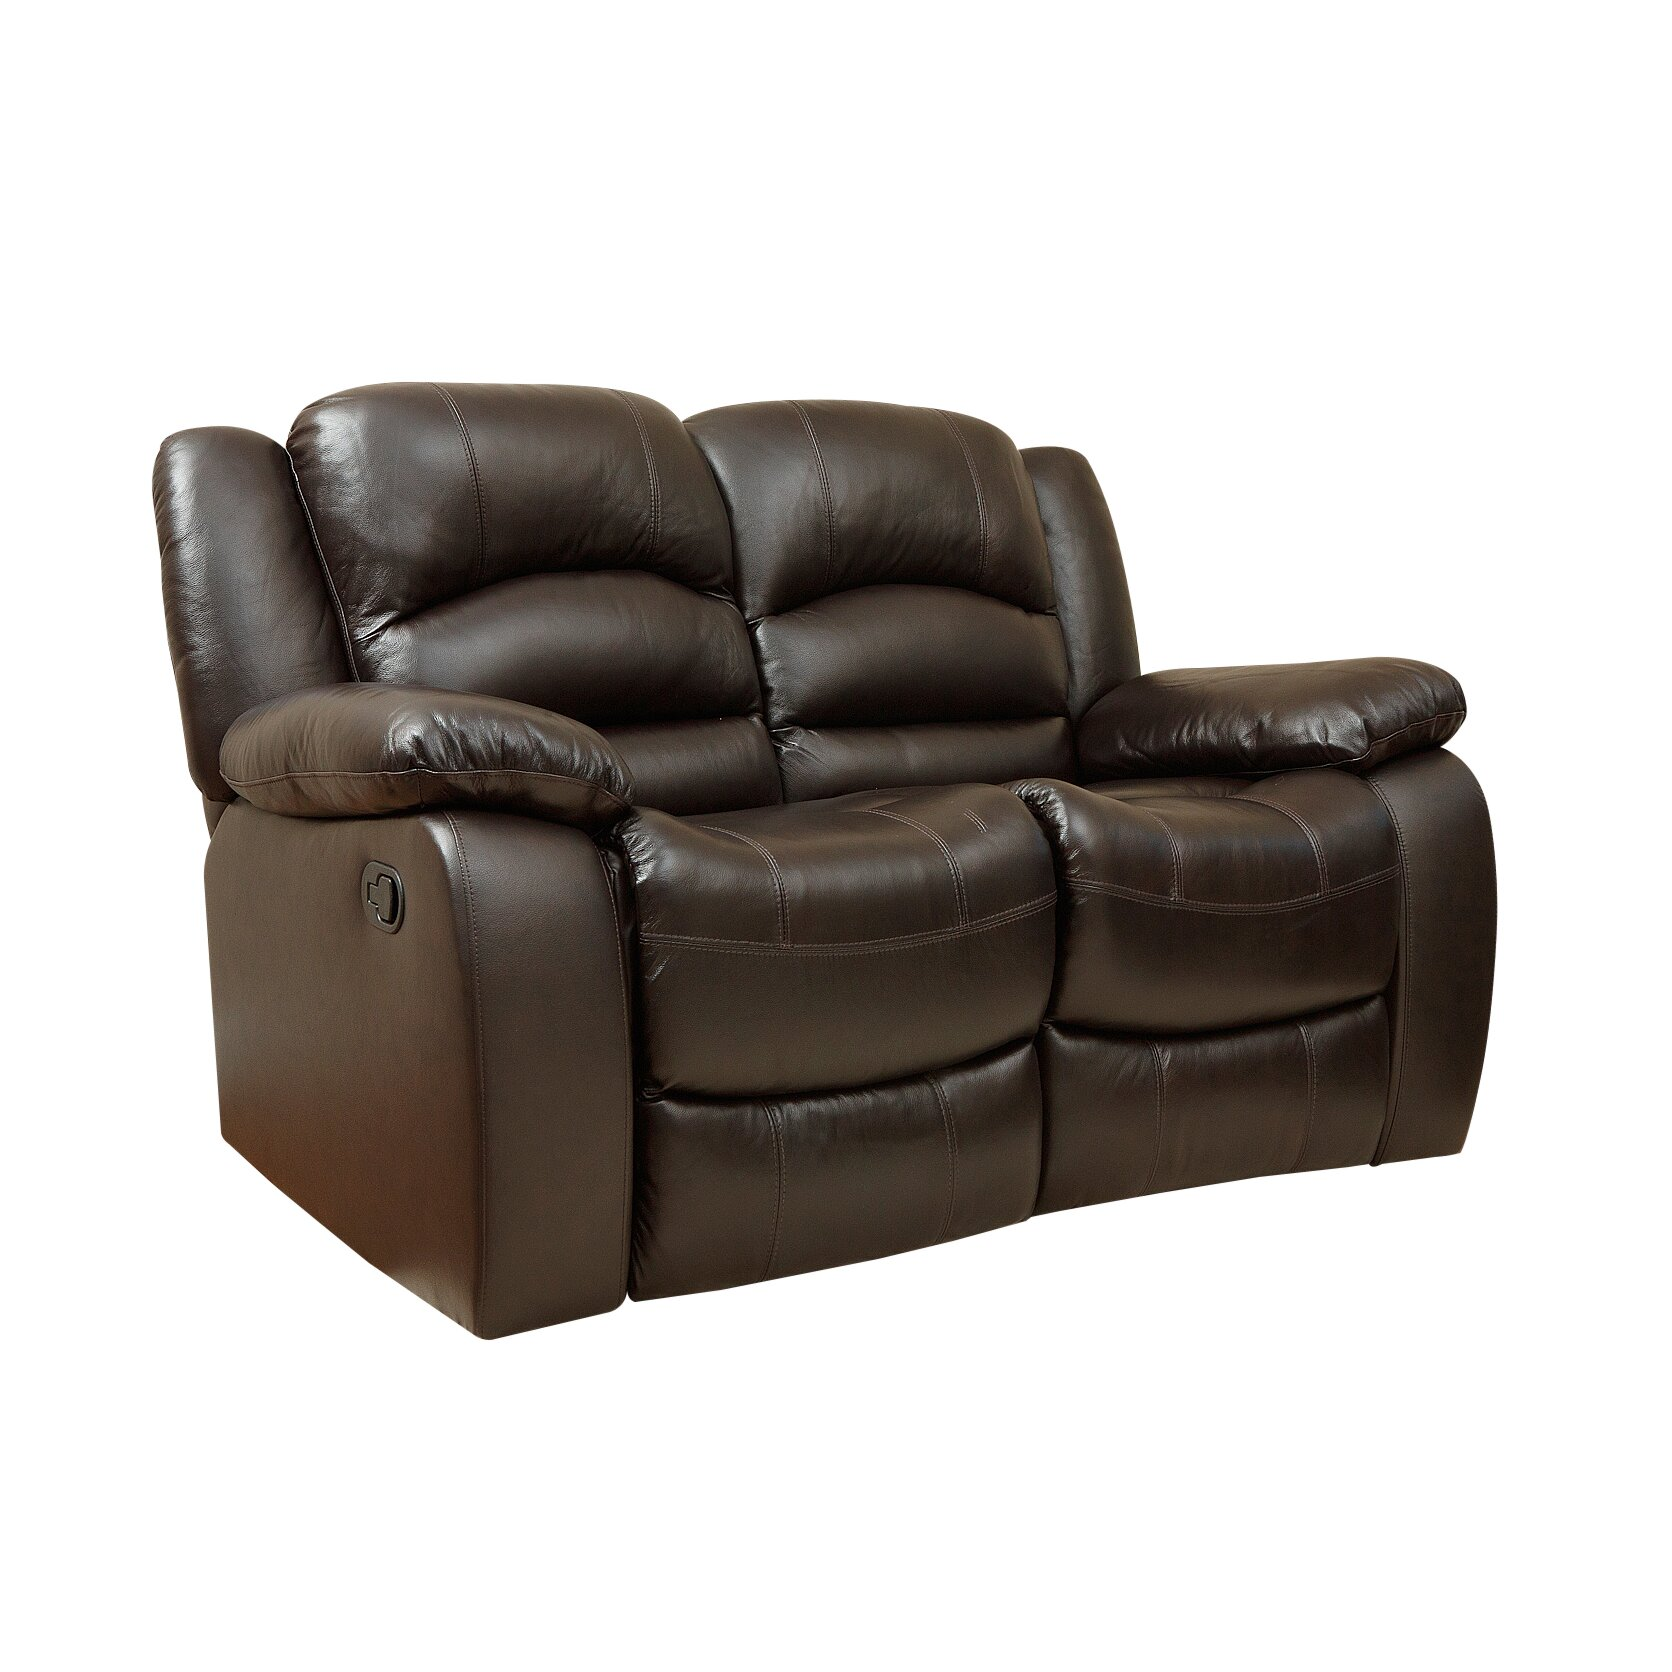 Darby Home Co Jorgensen Italian Leather Reclining Loveseat Reviews Wayfair